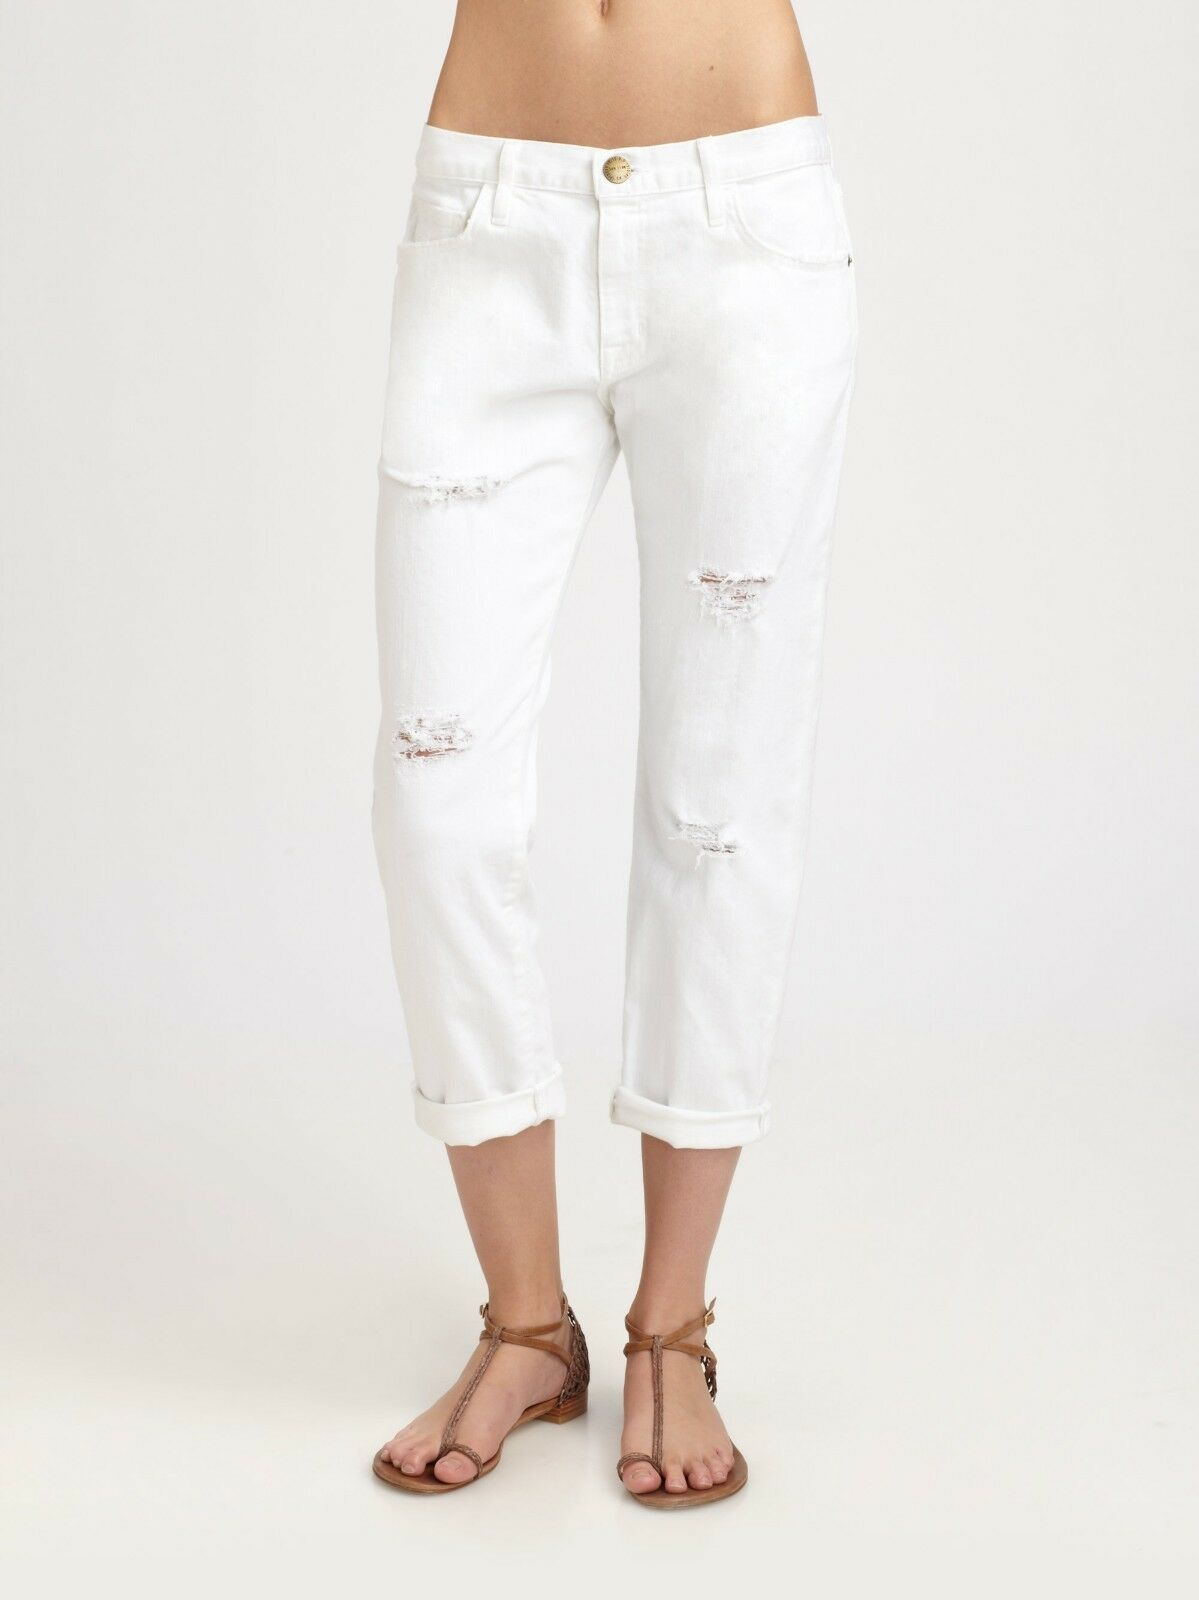 NWT Current Elliott The Boyfriend in Sugar Destroy White Slouchy Crop Jeans 30